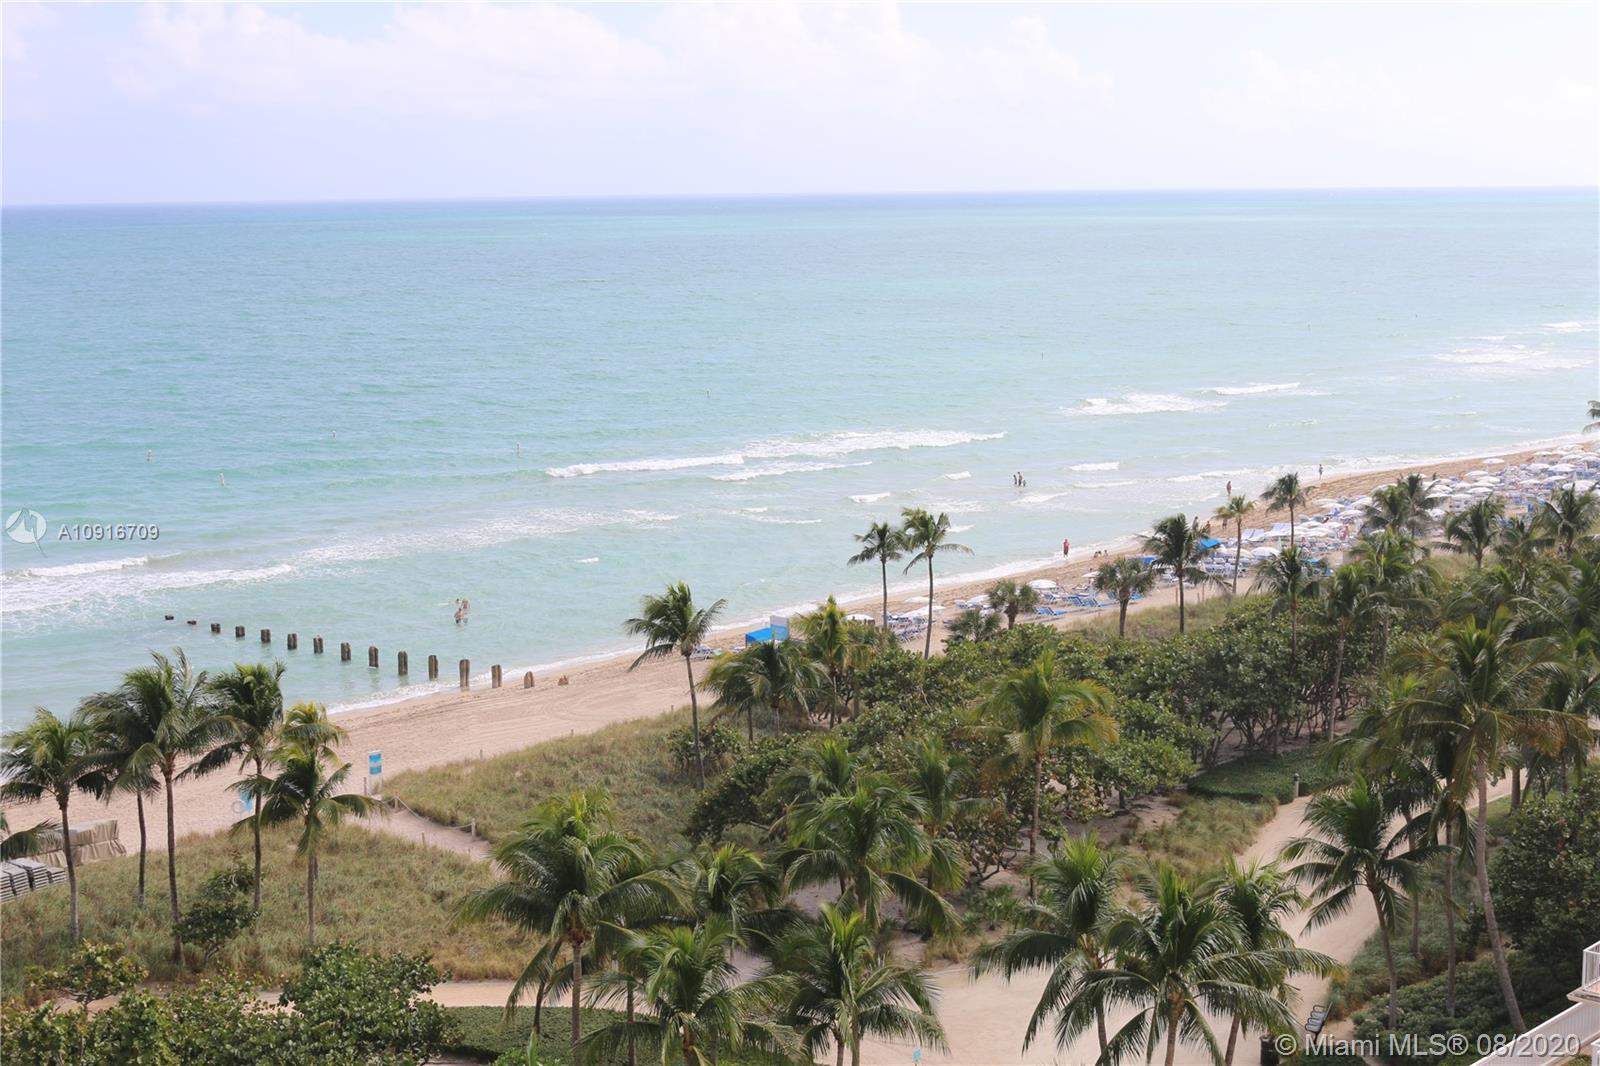 Looking for a great Location and direct ocean views home? Balmoral 11B at Bal Harbour Florida is the